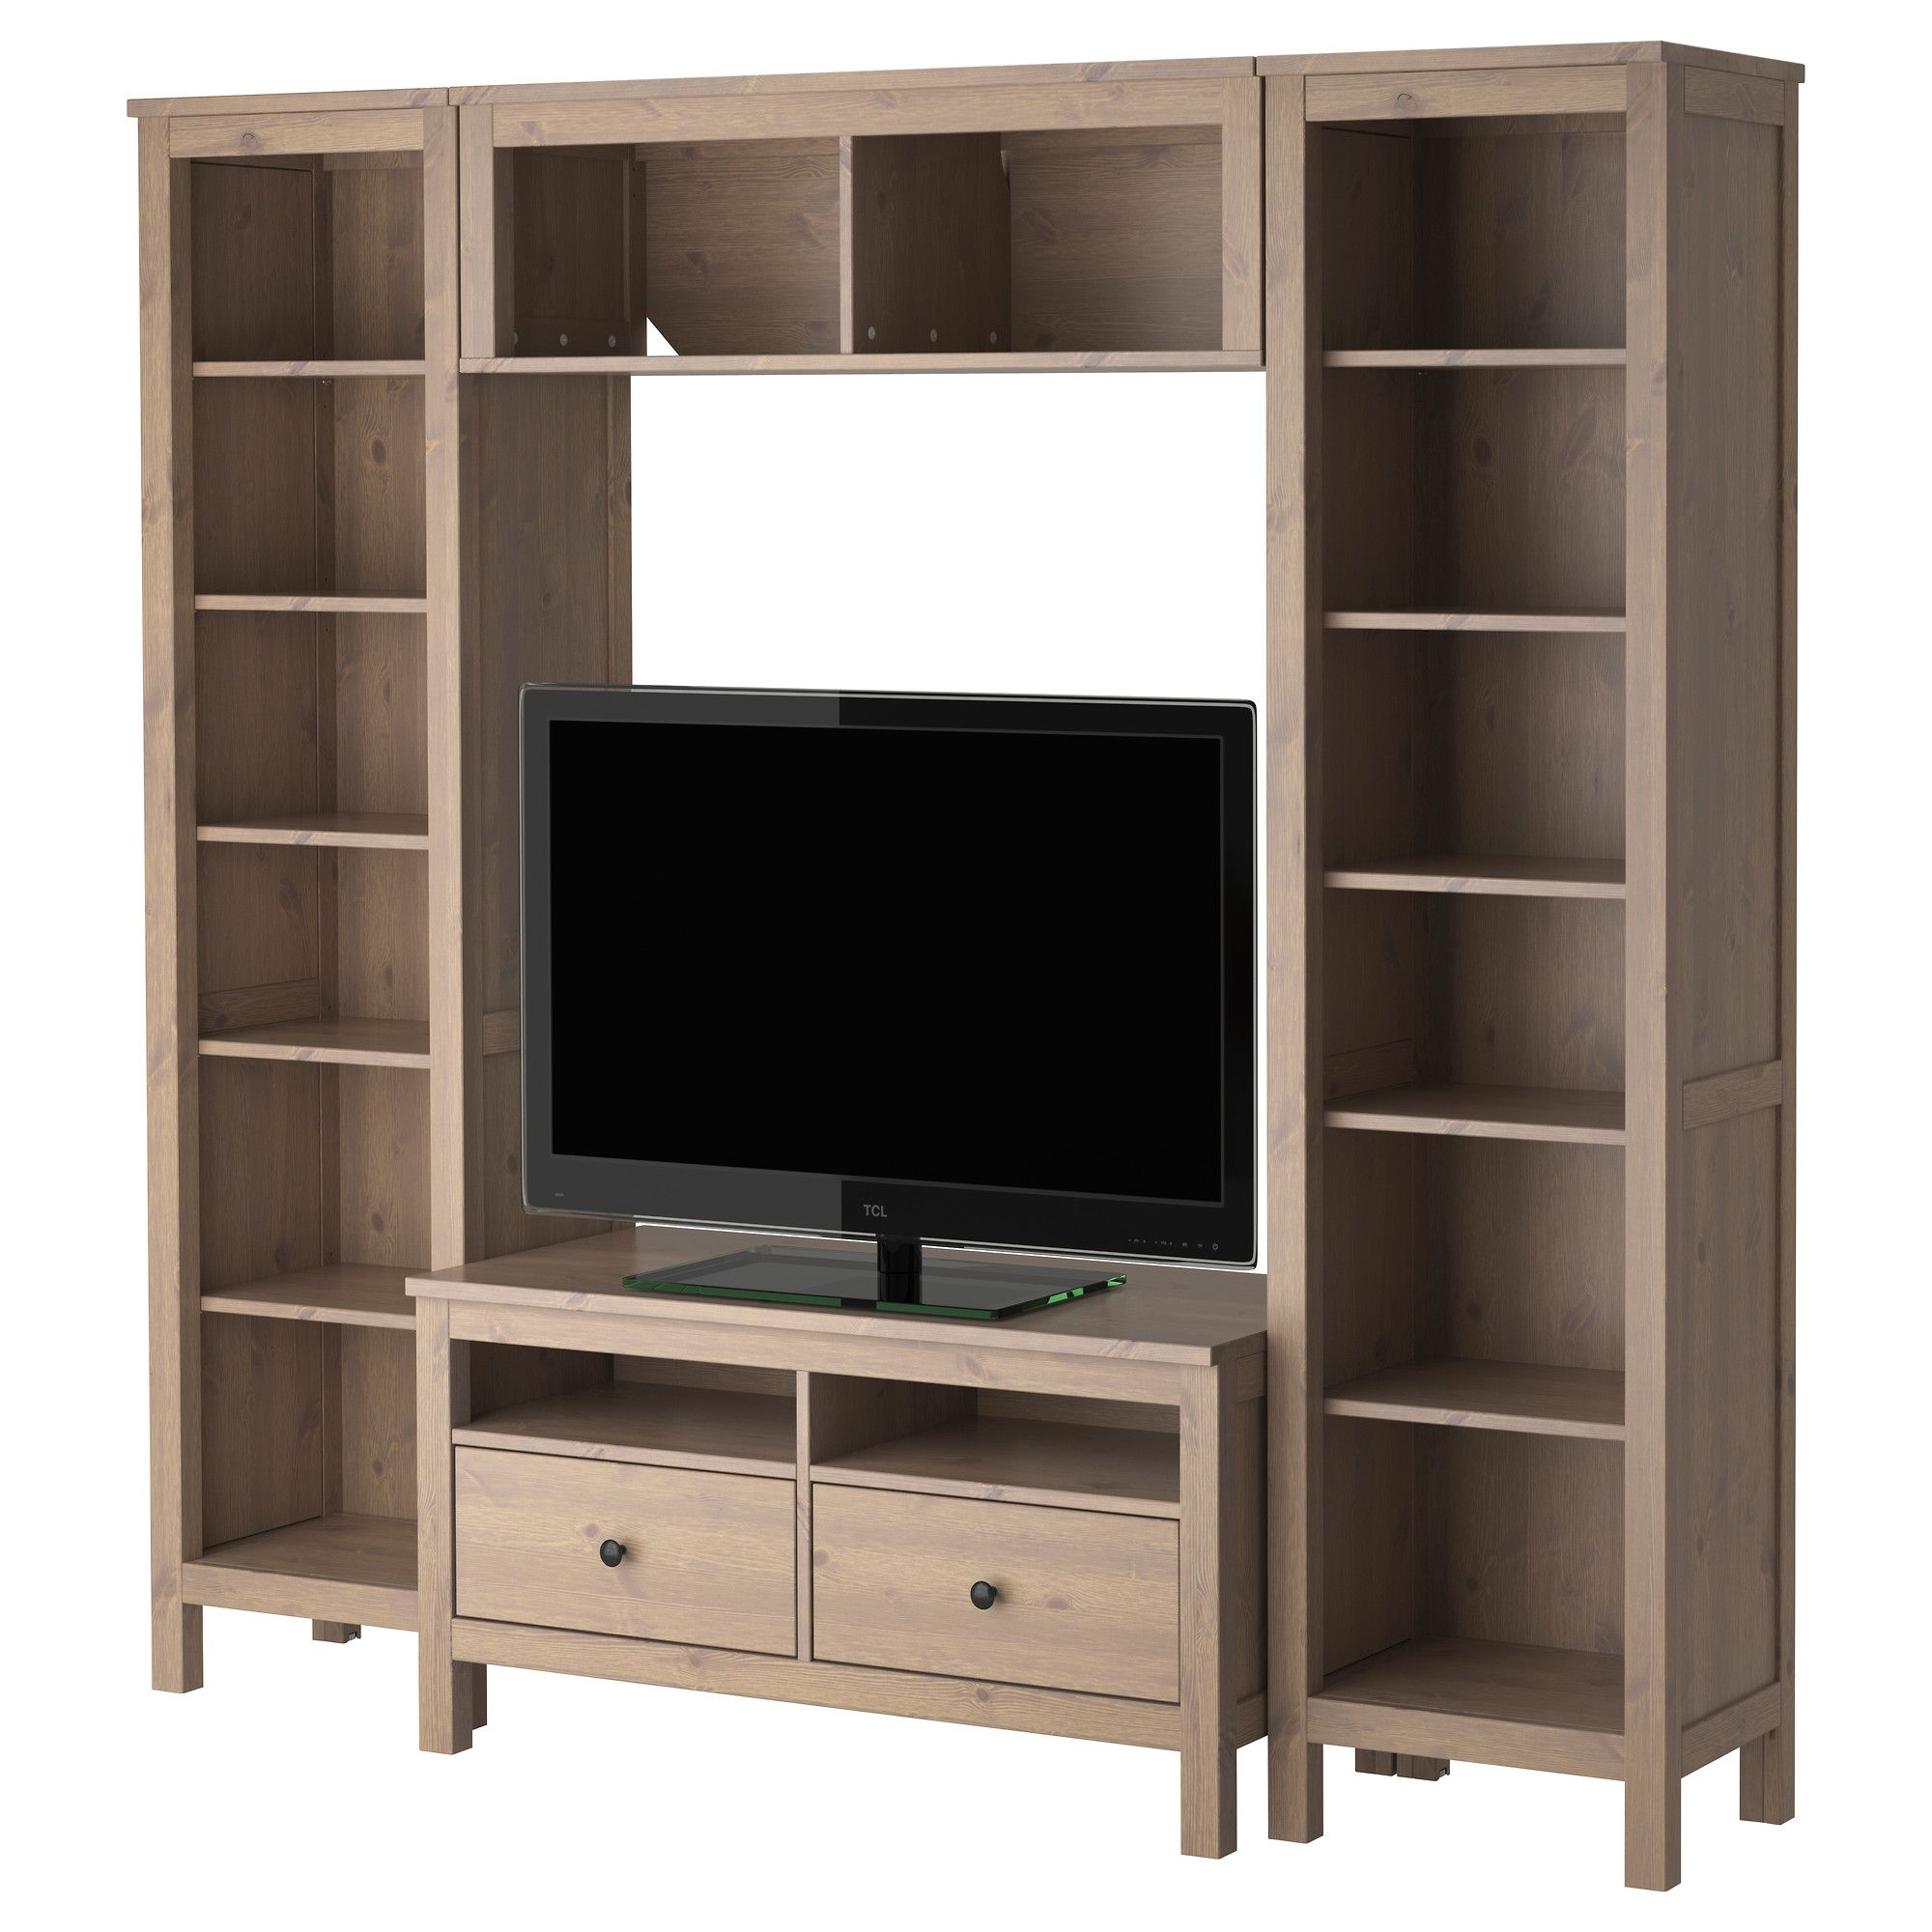 Meuble Hemnes Ikea Hemnes Tv Storage Combination Ikea Thought I Had Pinned This